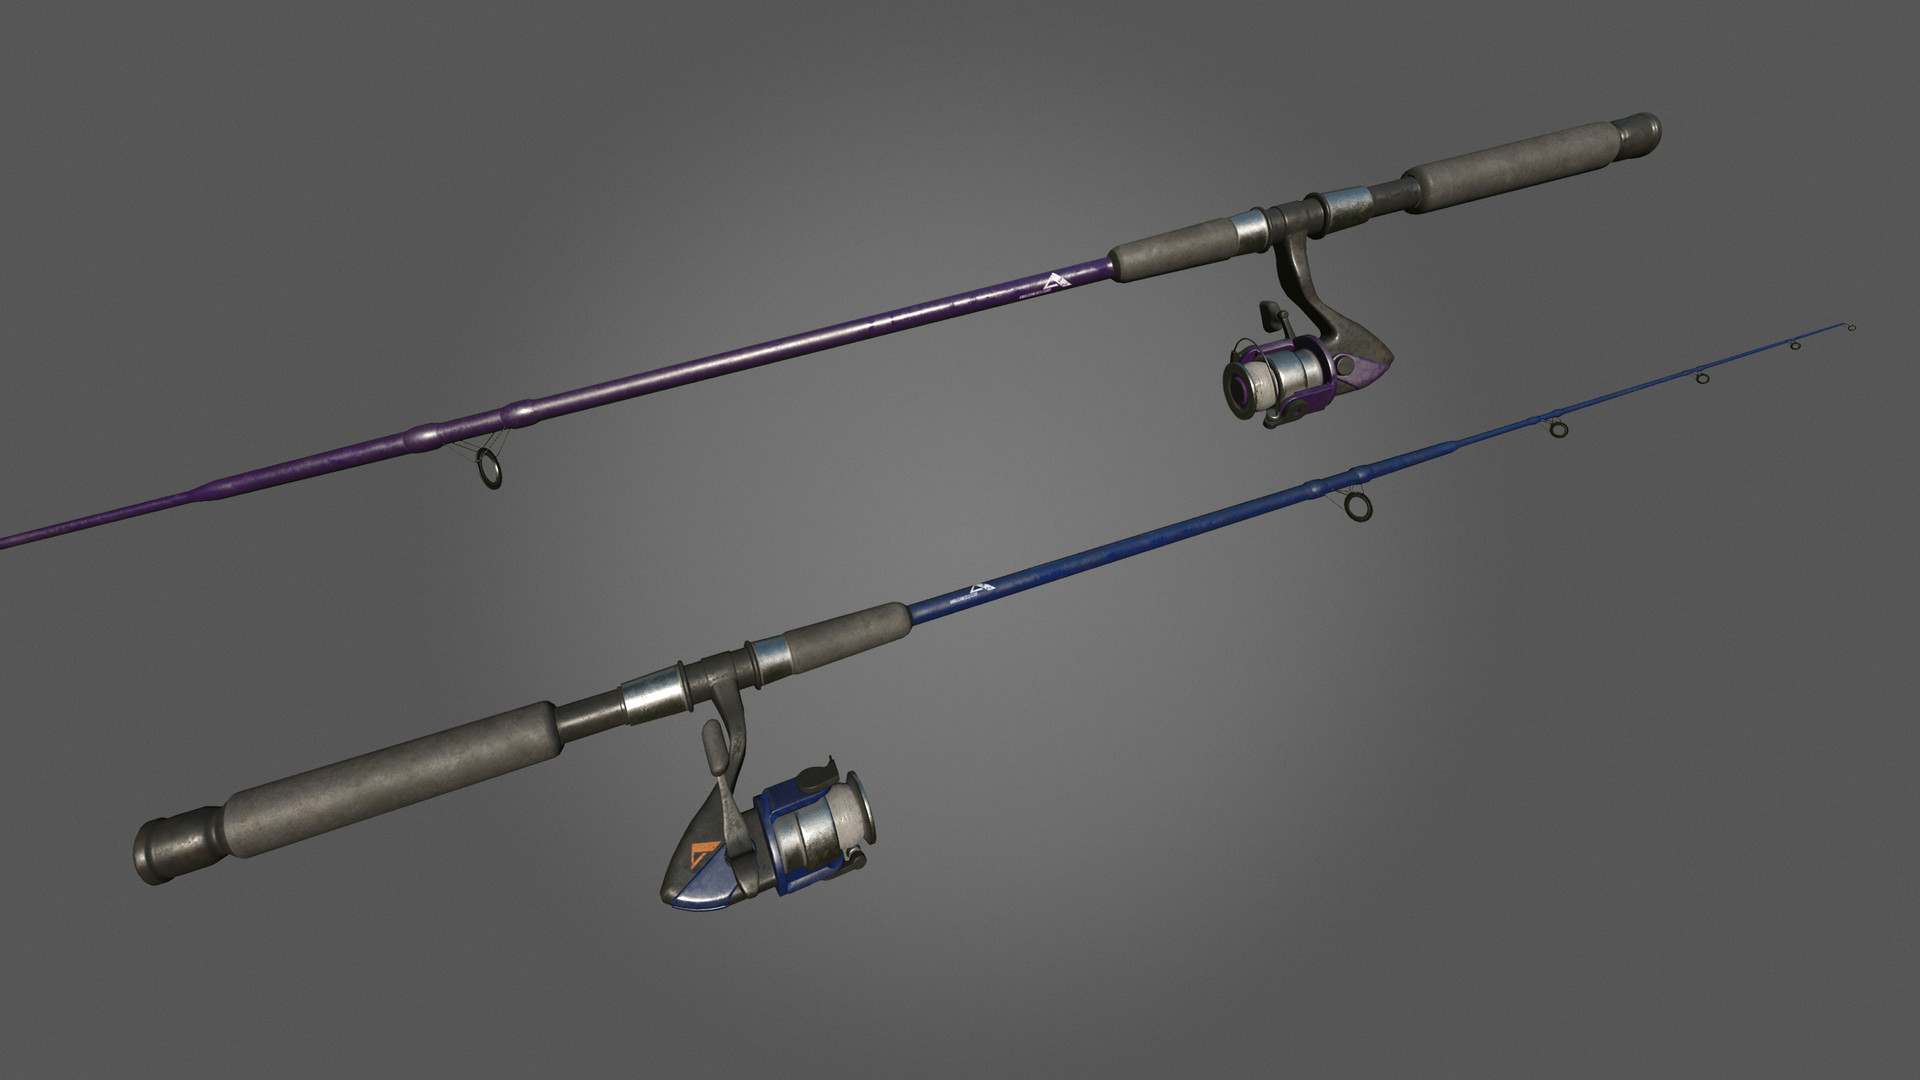 Carl kent fishing rod 1